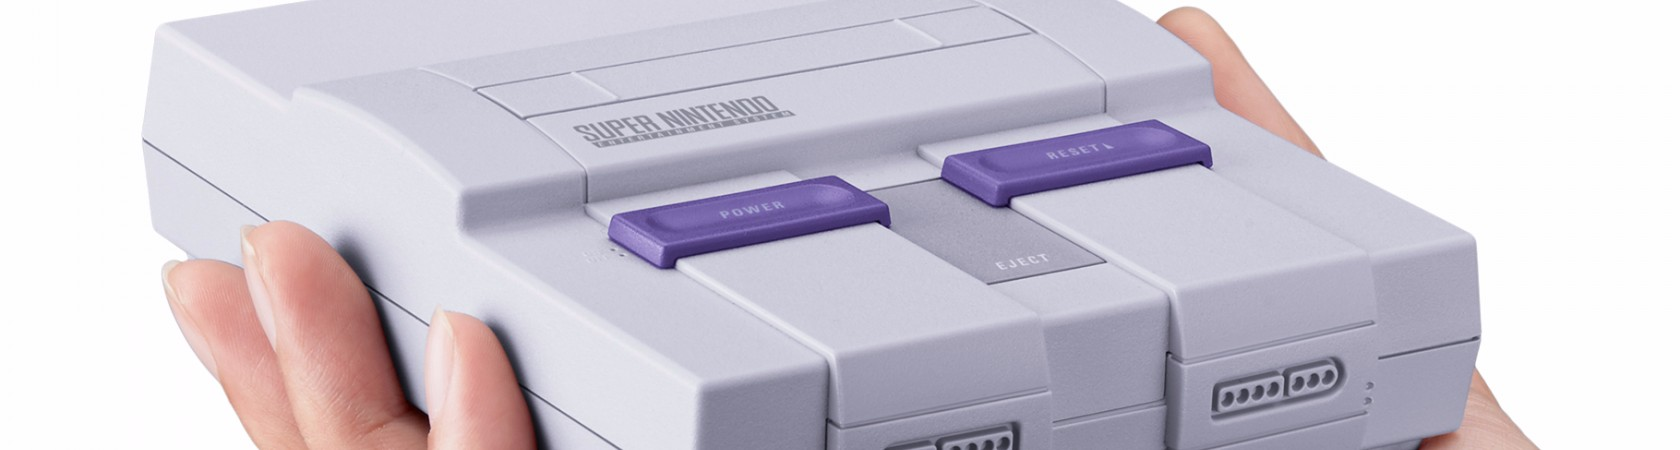 Snes Classic Edition Black Friday Deals How To Buy A Snes Classic